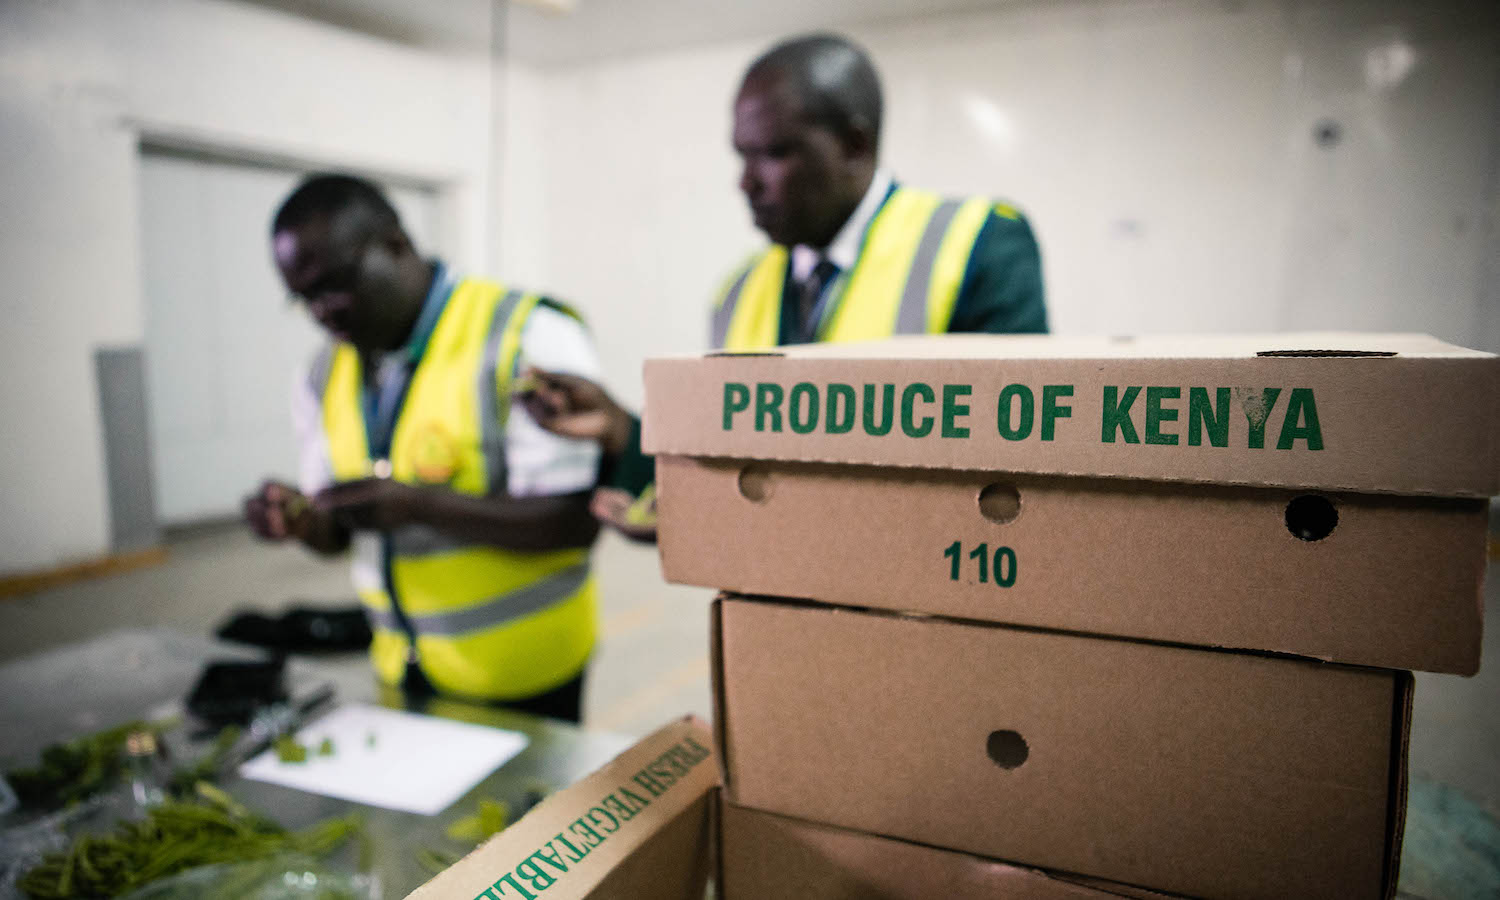 Kenya's prosperous perishable exports are wilting due to global lockdown